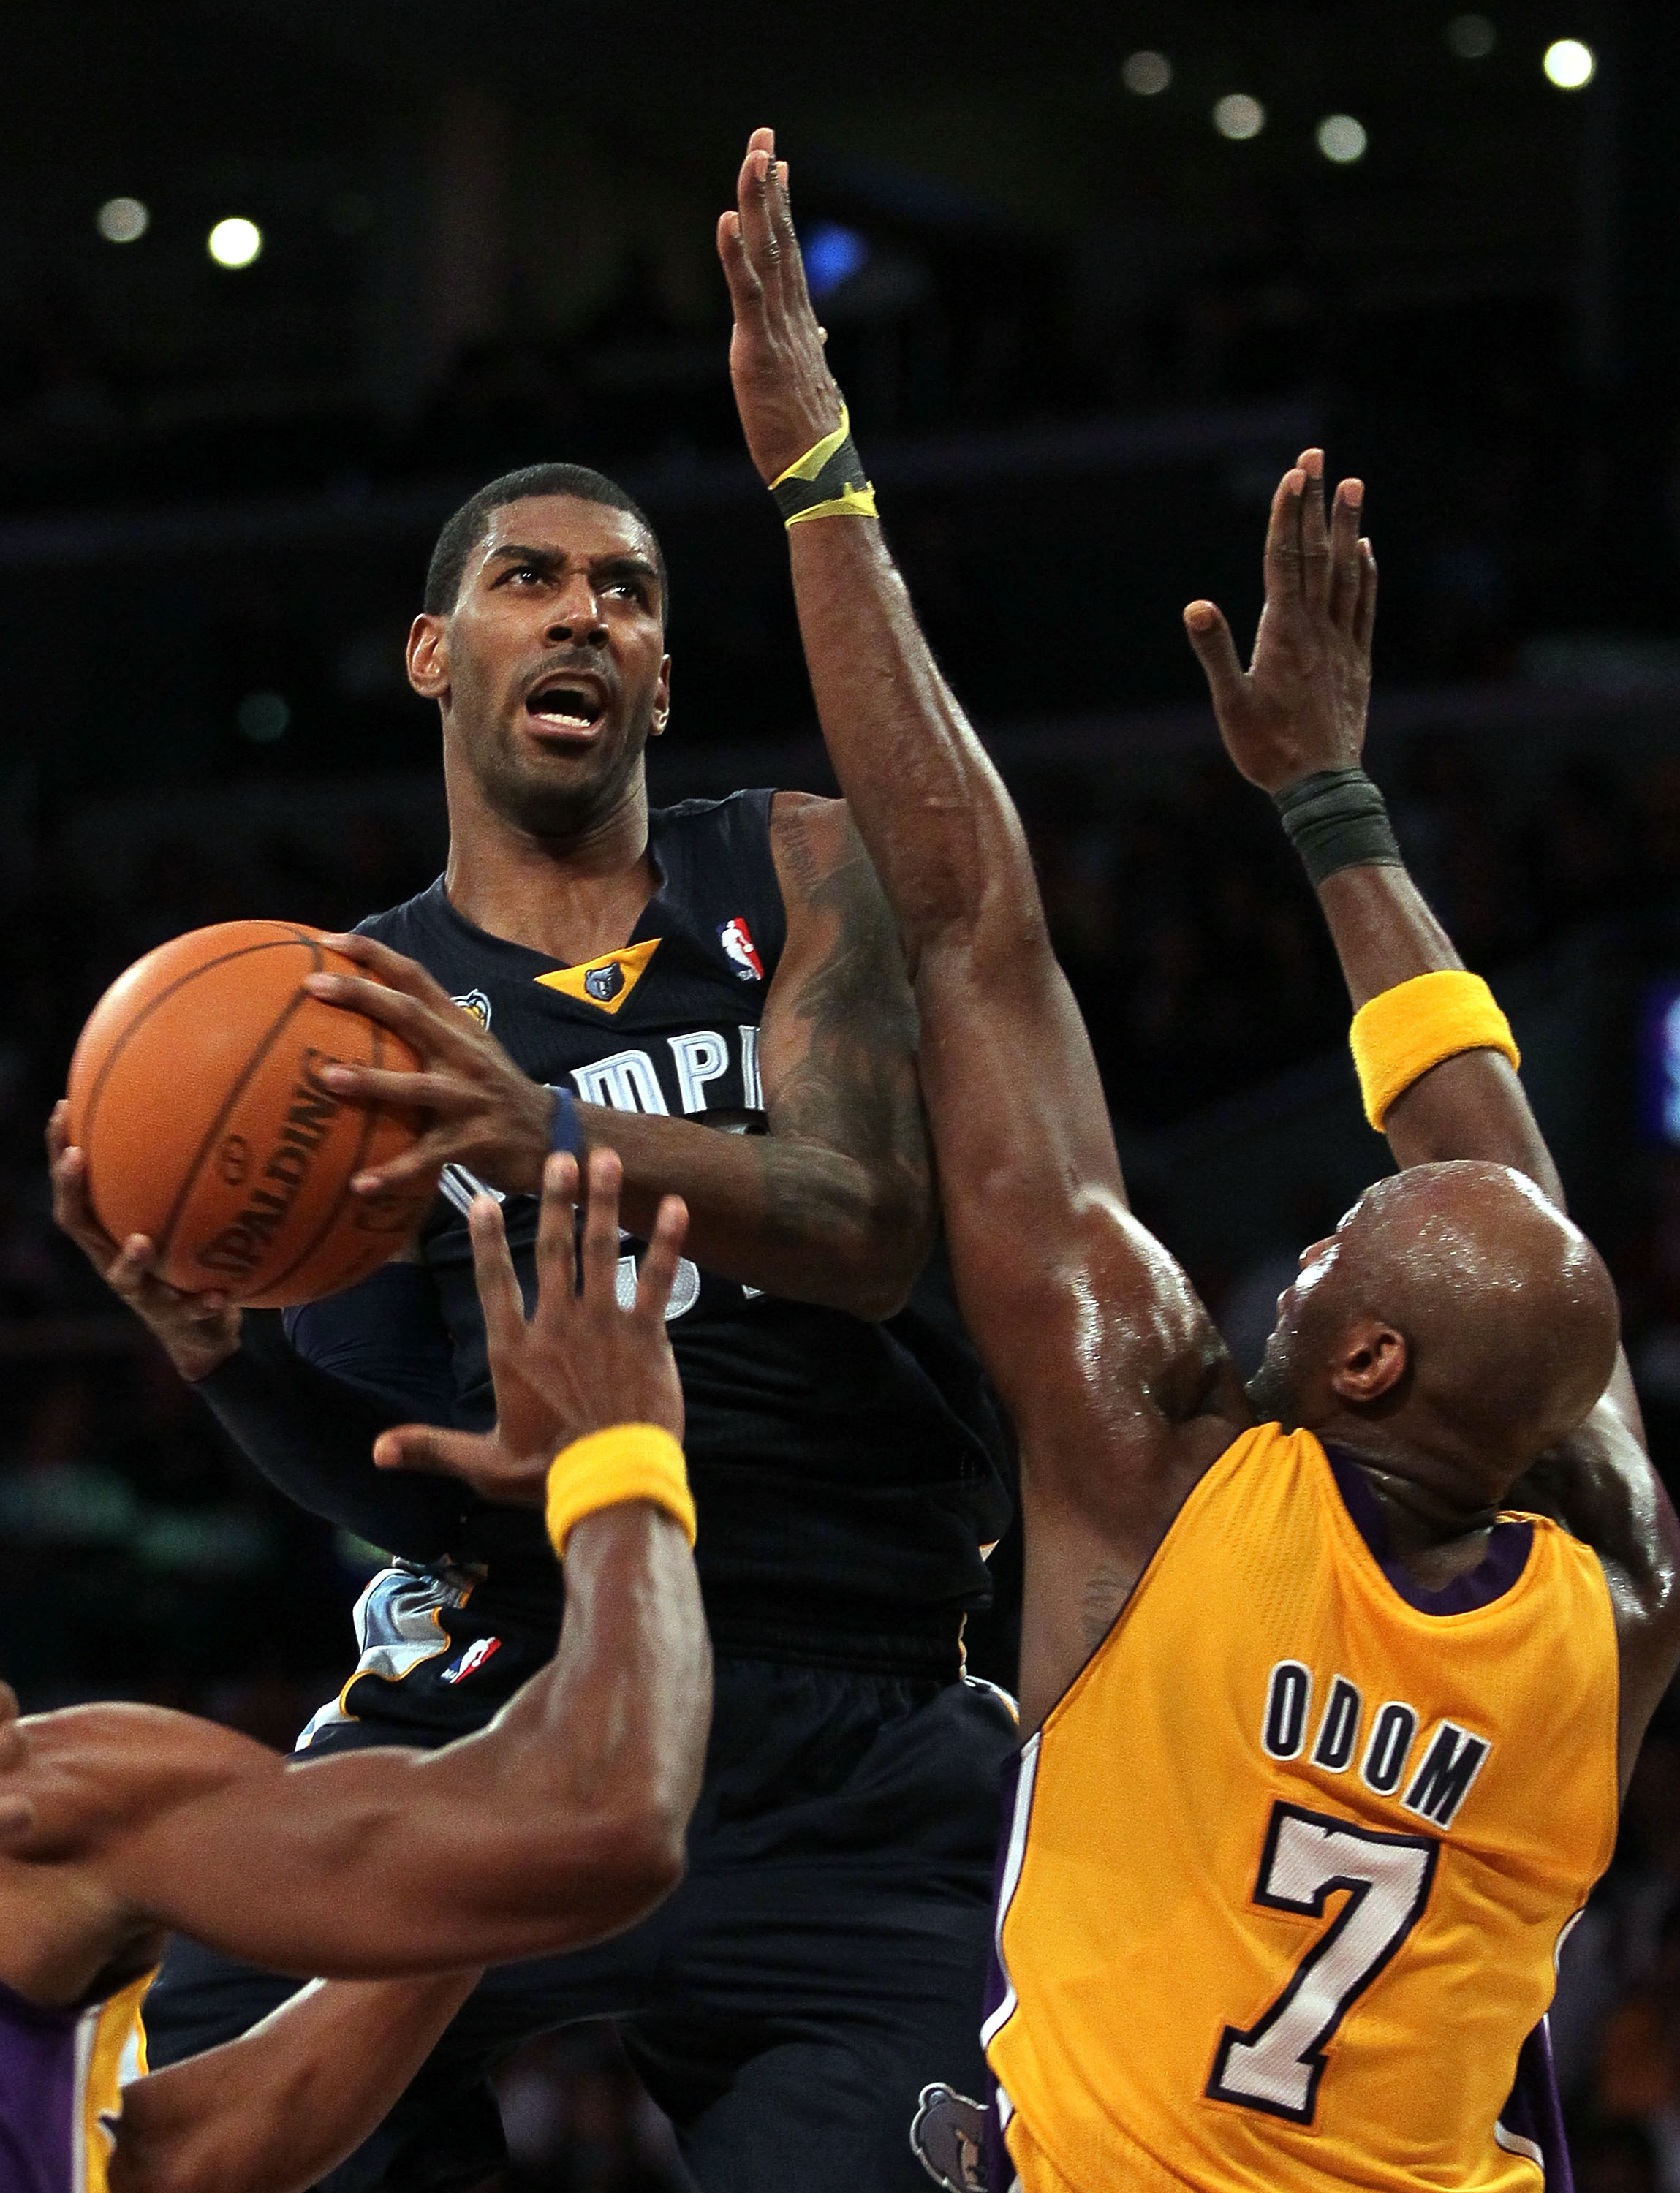 LOS ANGELES, CA - NOVEMBER 02:  O.J. Mayo #32 of the Memphis Grizzlies attempts a lay up against the Los Angeles Lakers during the game at Staples Center on November 2, 2010 in Los Angeles, California. The Lakers defeated the Grizzlies 124-105. NOTE TO US